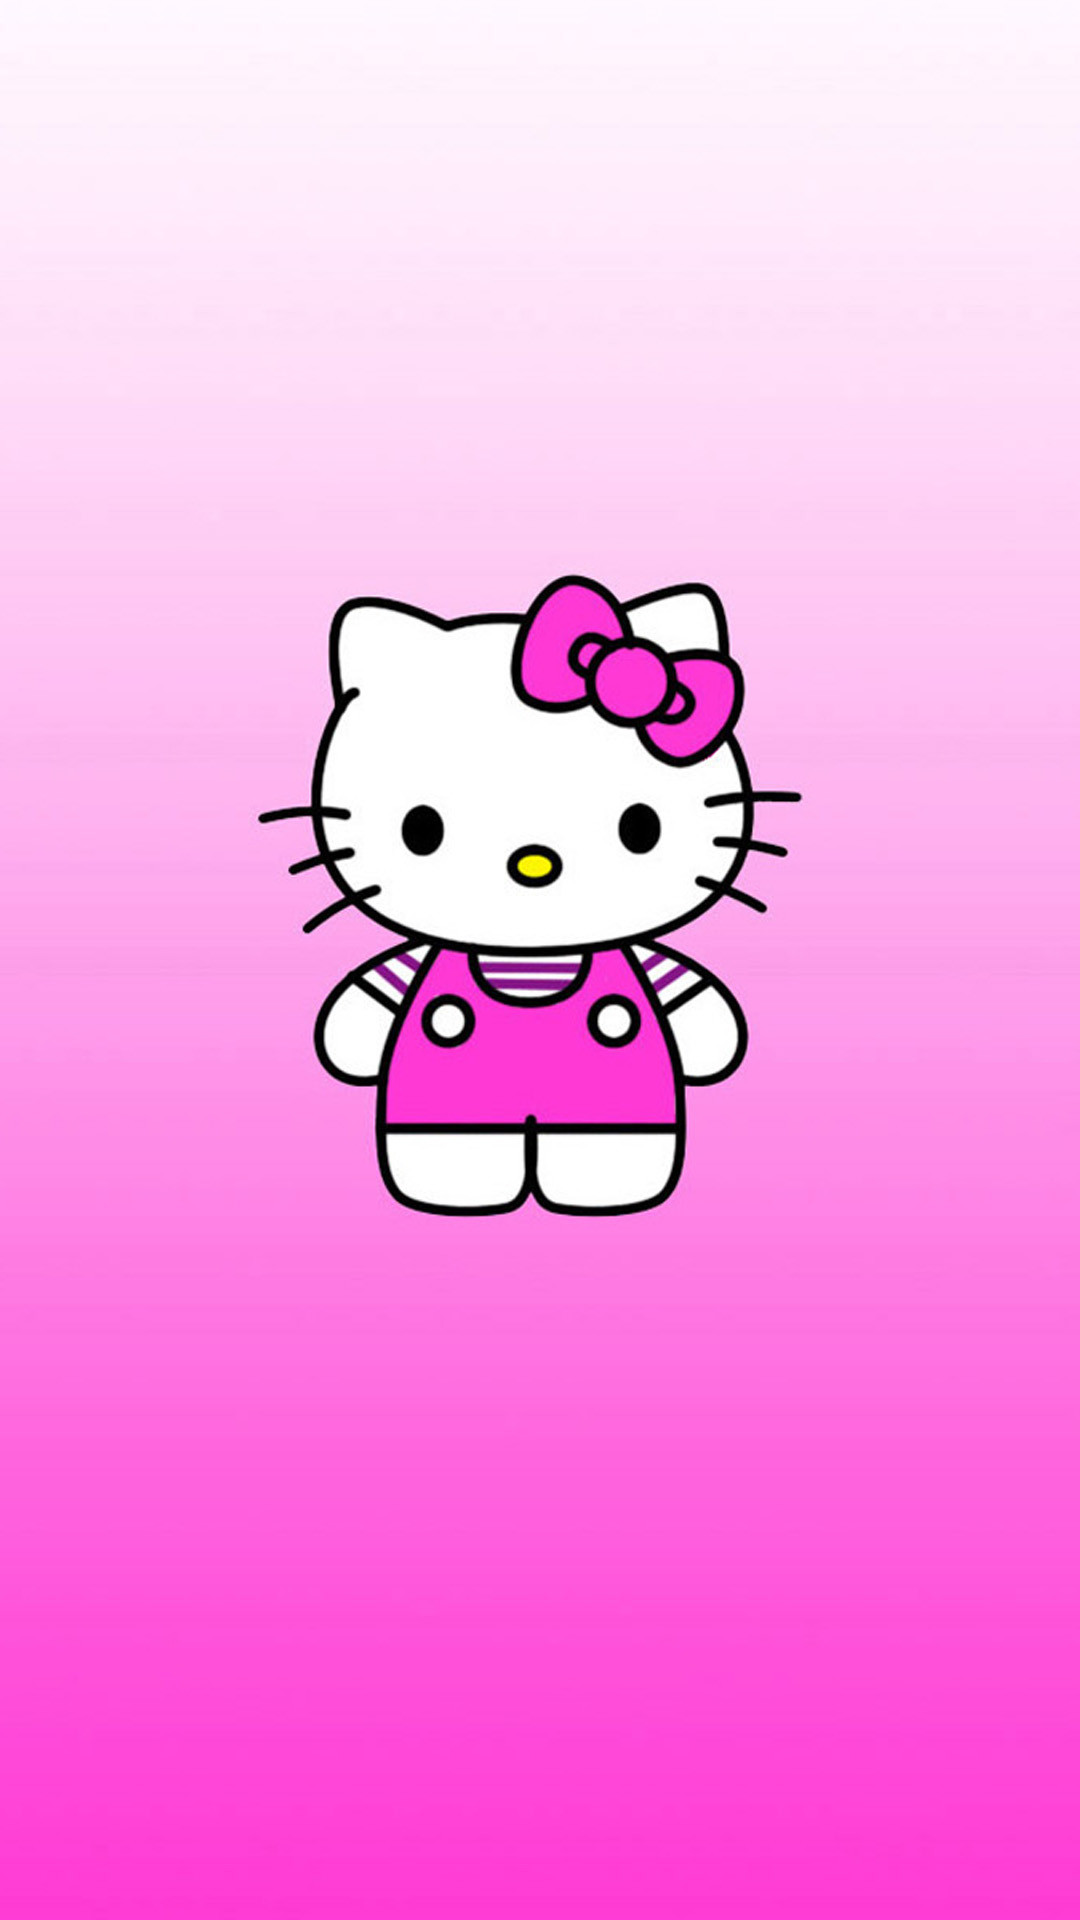 1080x1920 Girlish Hello Kitty Pink Cute Japan Cat